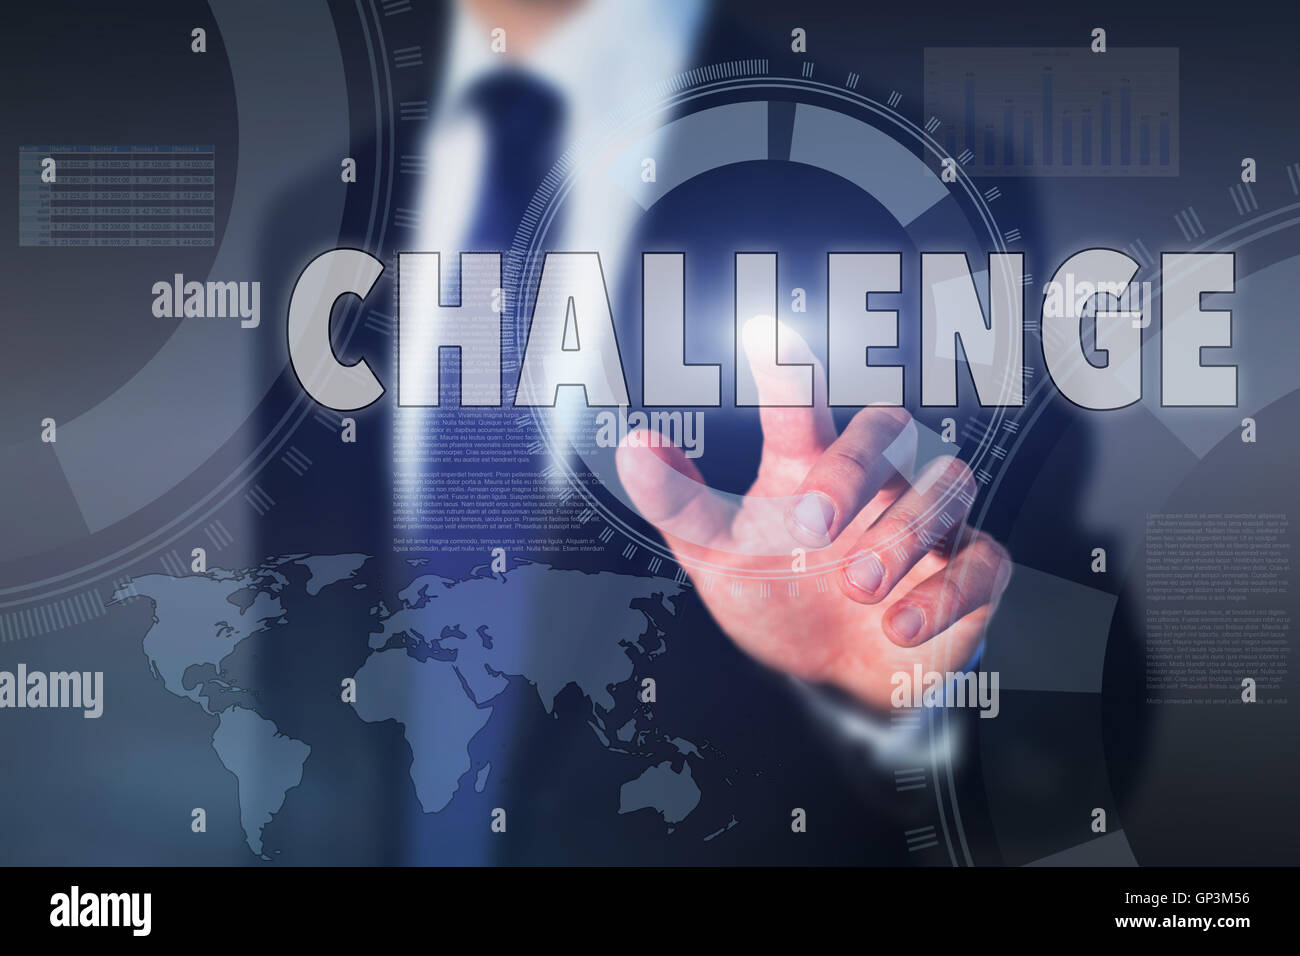 challenge concept, business man touching word on touchscreen - Stock Image